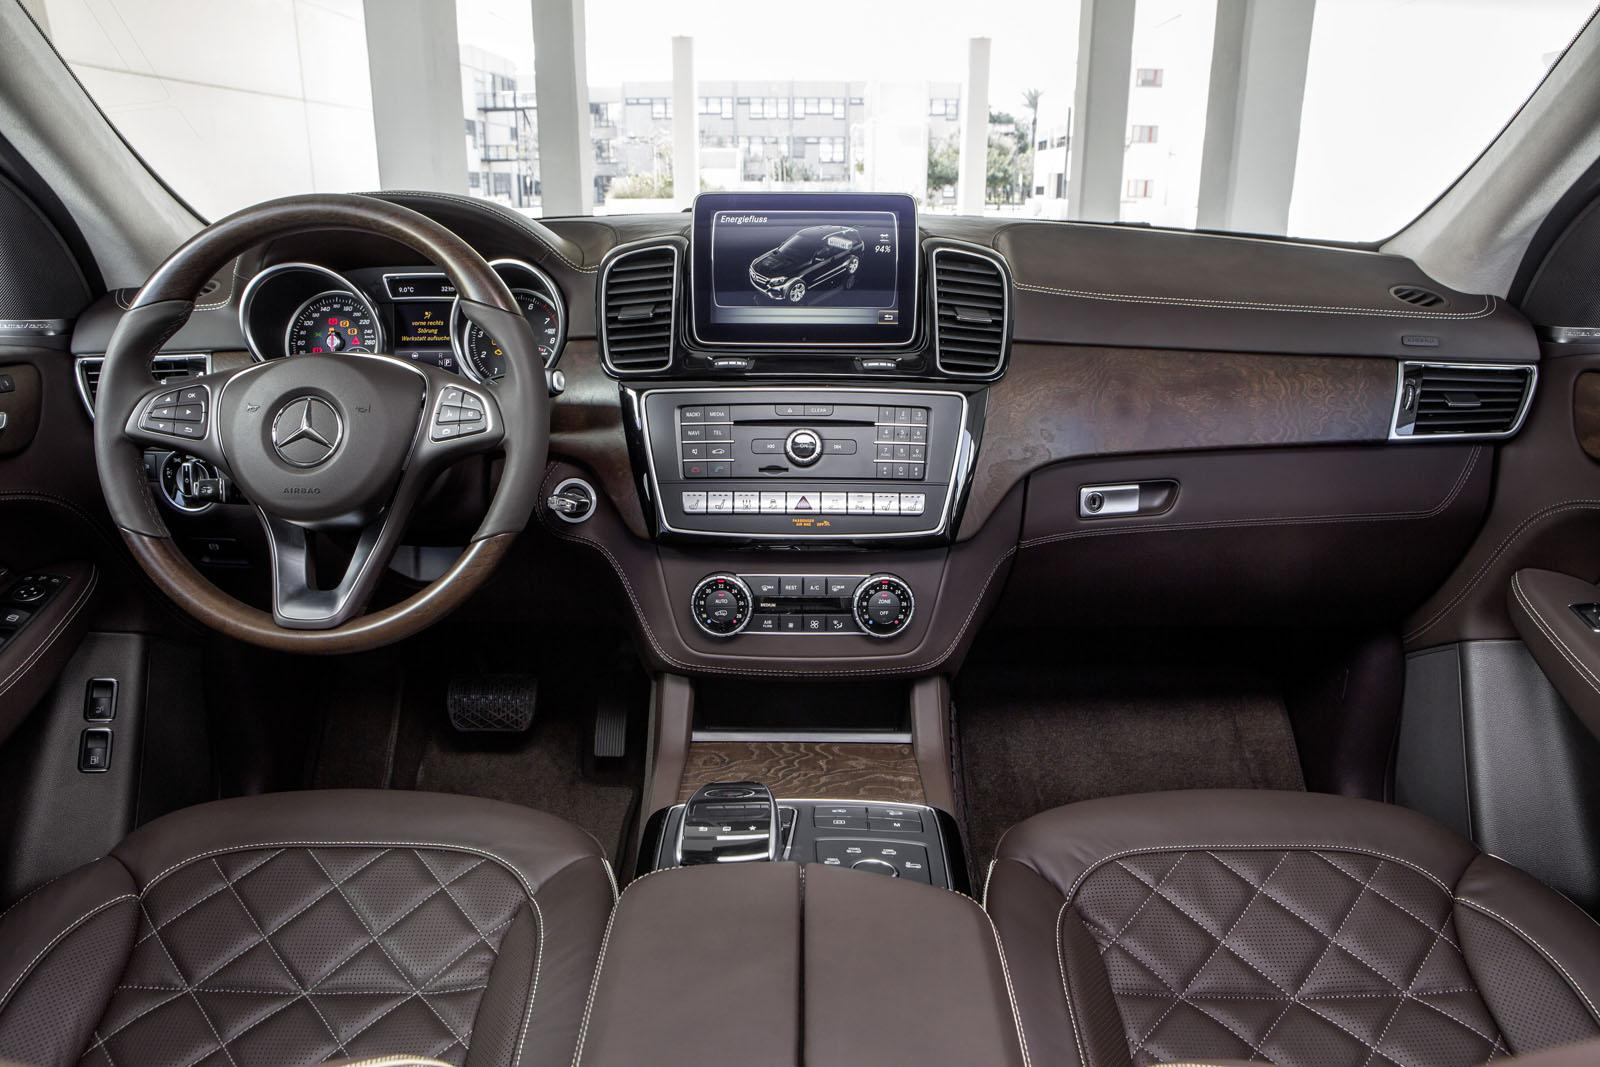 Mercedes GLE dashboard official image